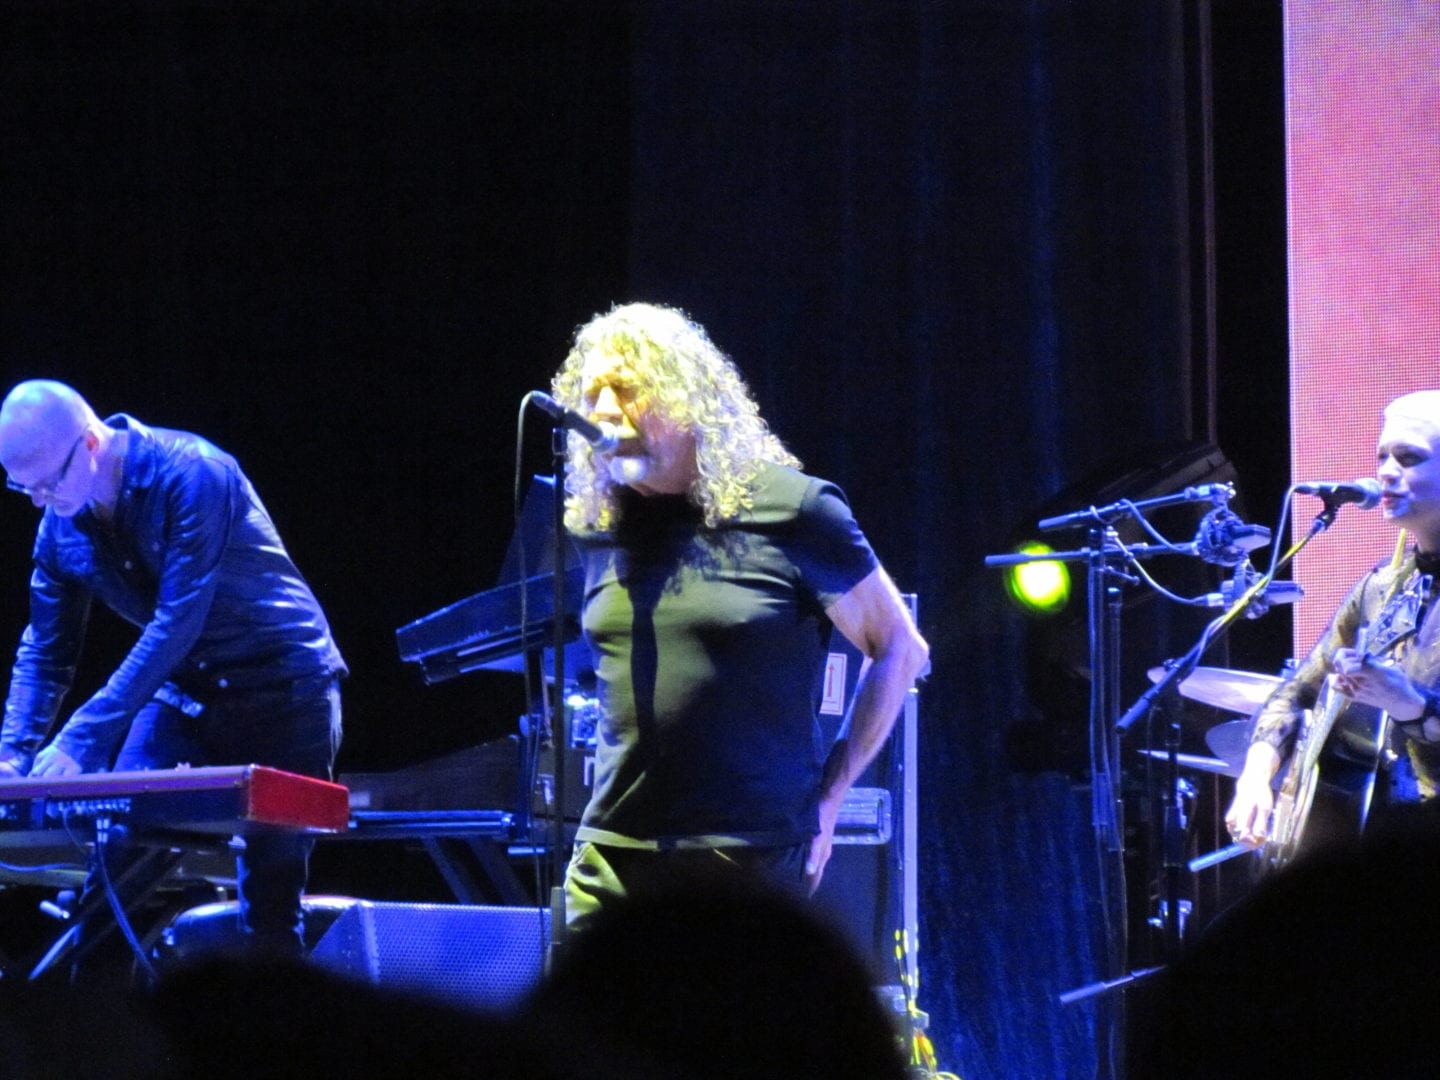 Robert Plant singing with his band